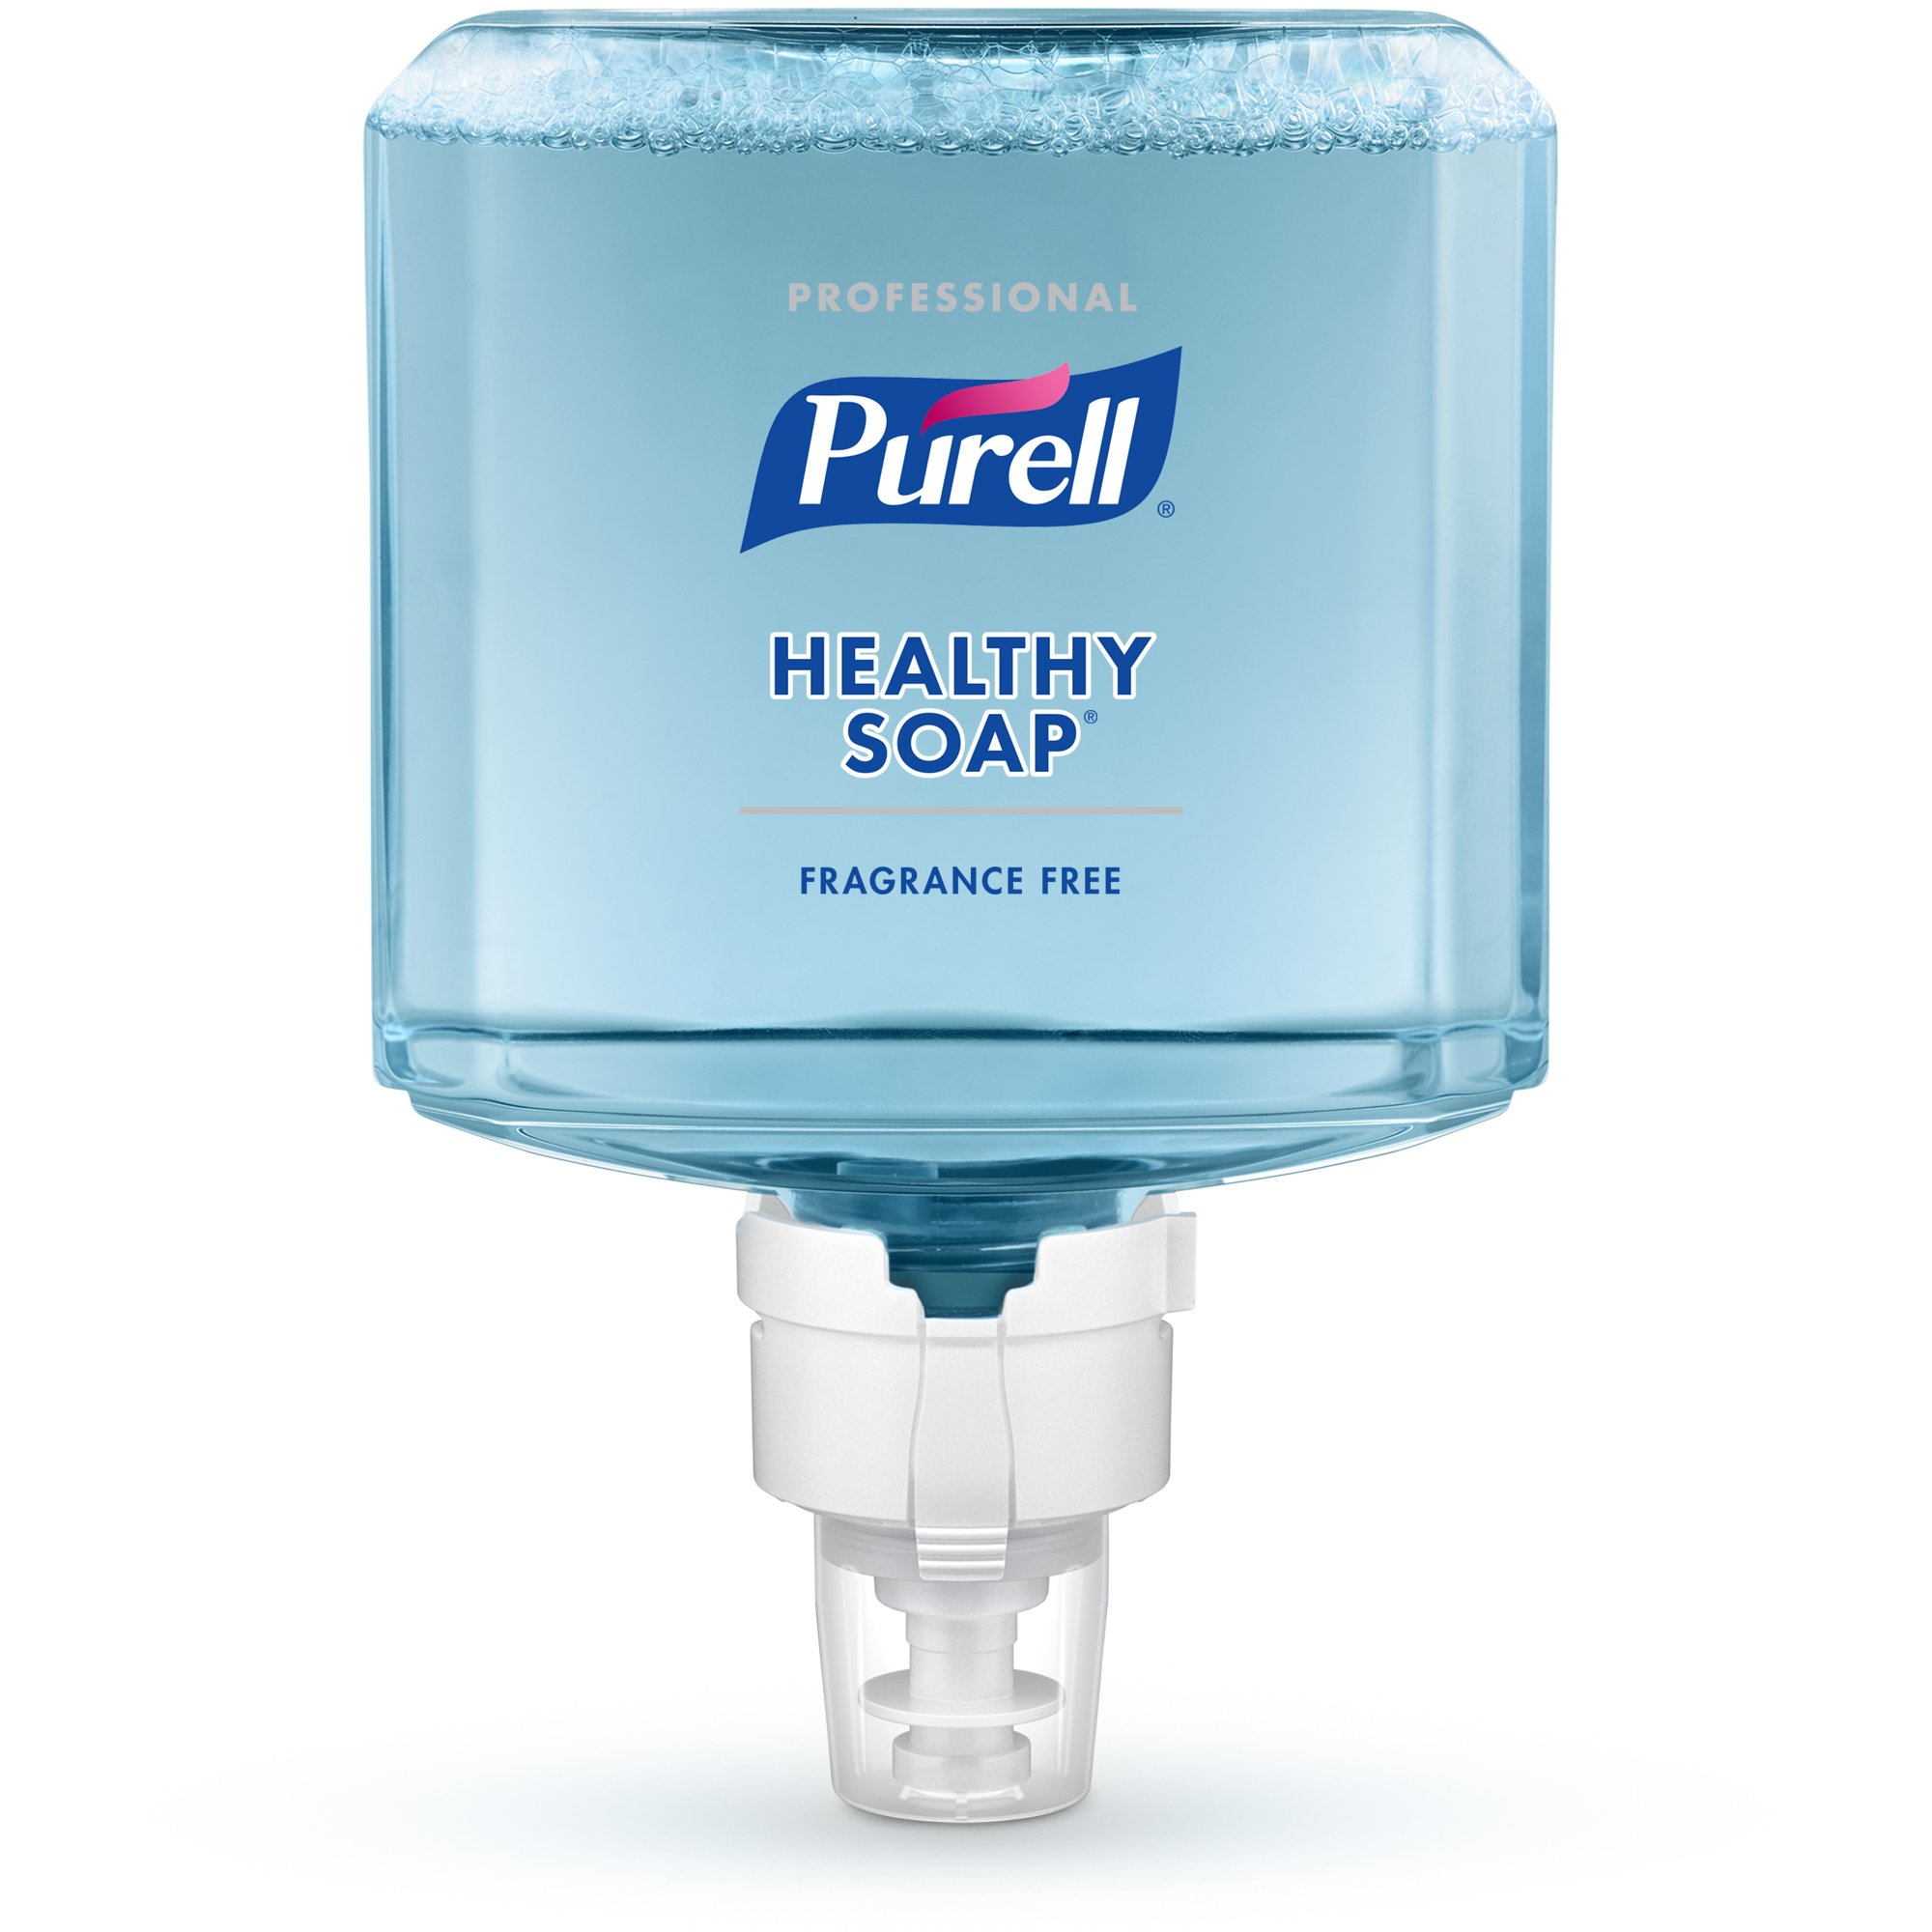 PURELL ES8 Professional HEALTHY SOAP Mild Foam Refill, Fragrance-Free, 1200 mL Green Certified Soap Refill for PURELL ES8 Touch-Free Dispenser (Pack of 2) - 7774-02 by Purell